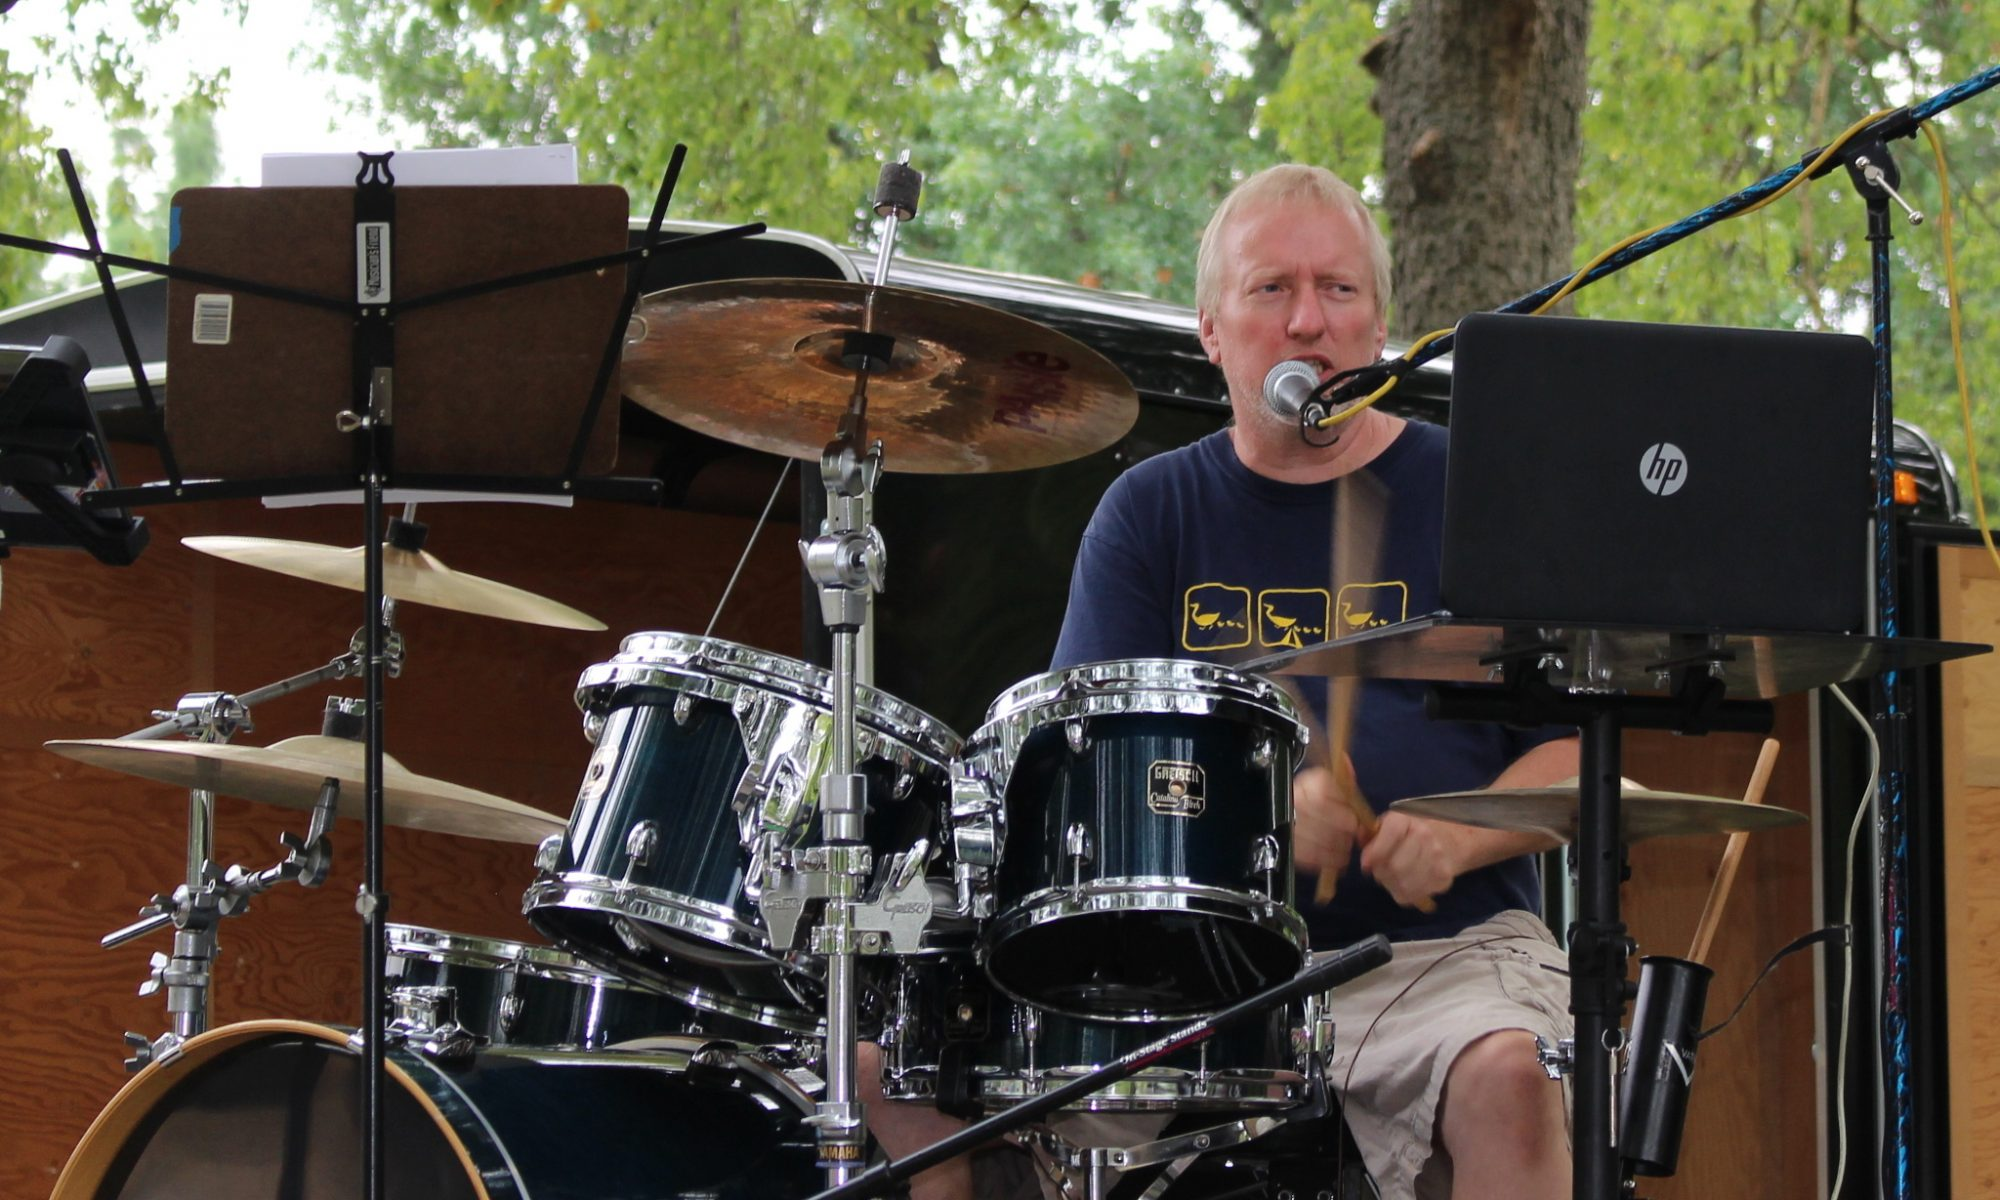 Pat The Drummer